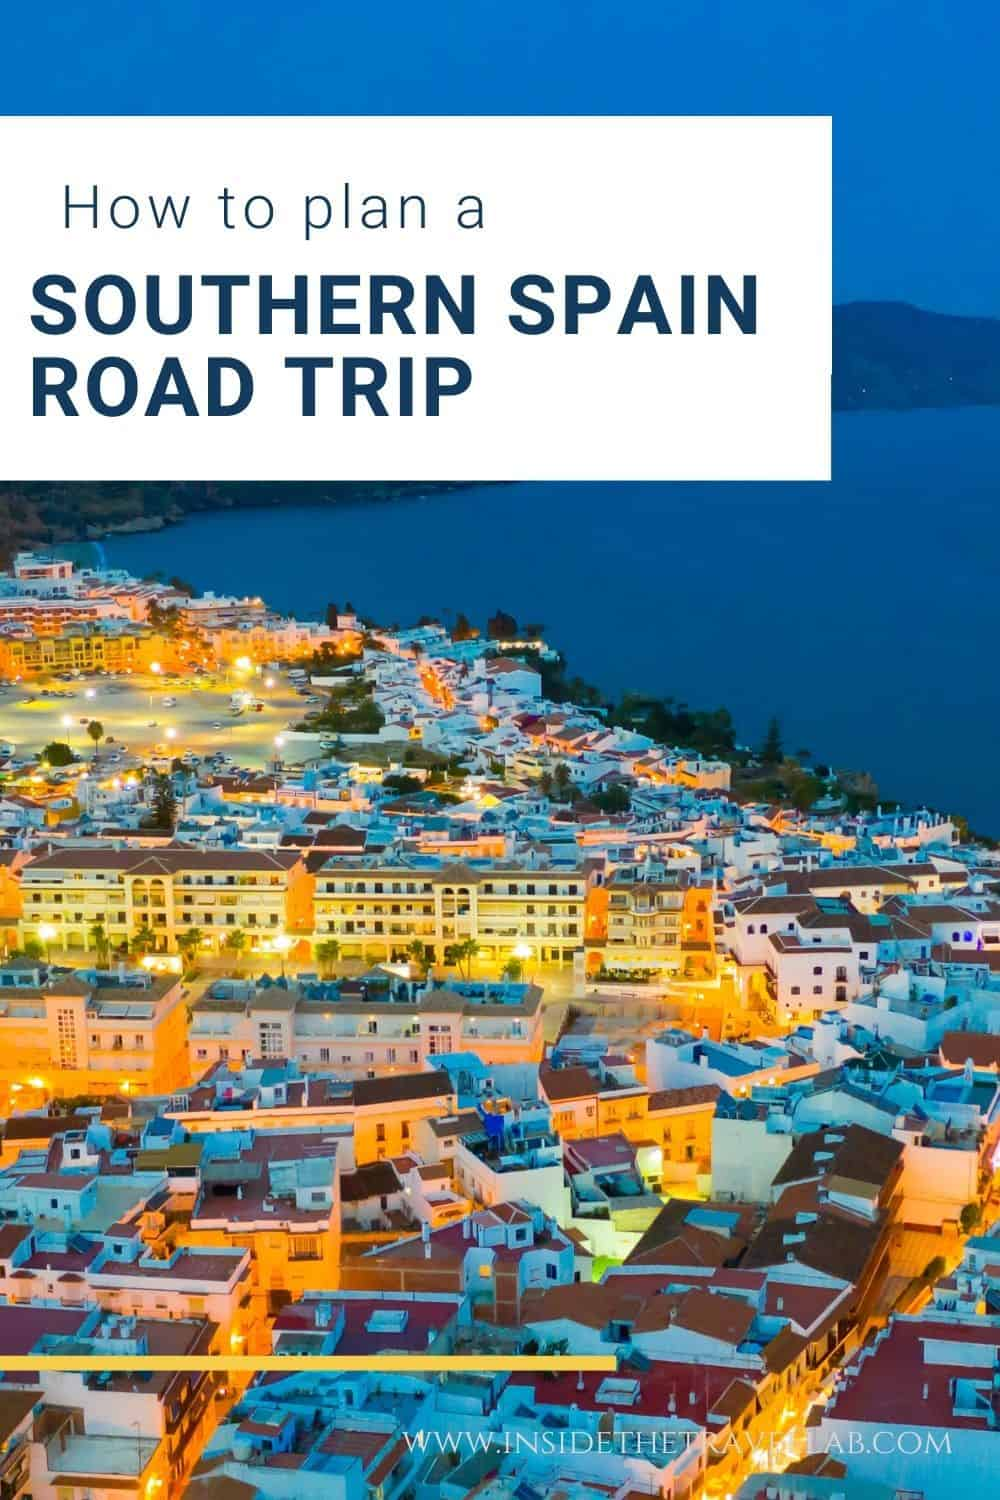 Southern Spain Travel Guide and Southern Spain Road Trip Itinerary cover image